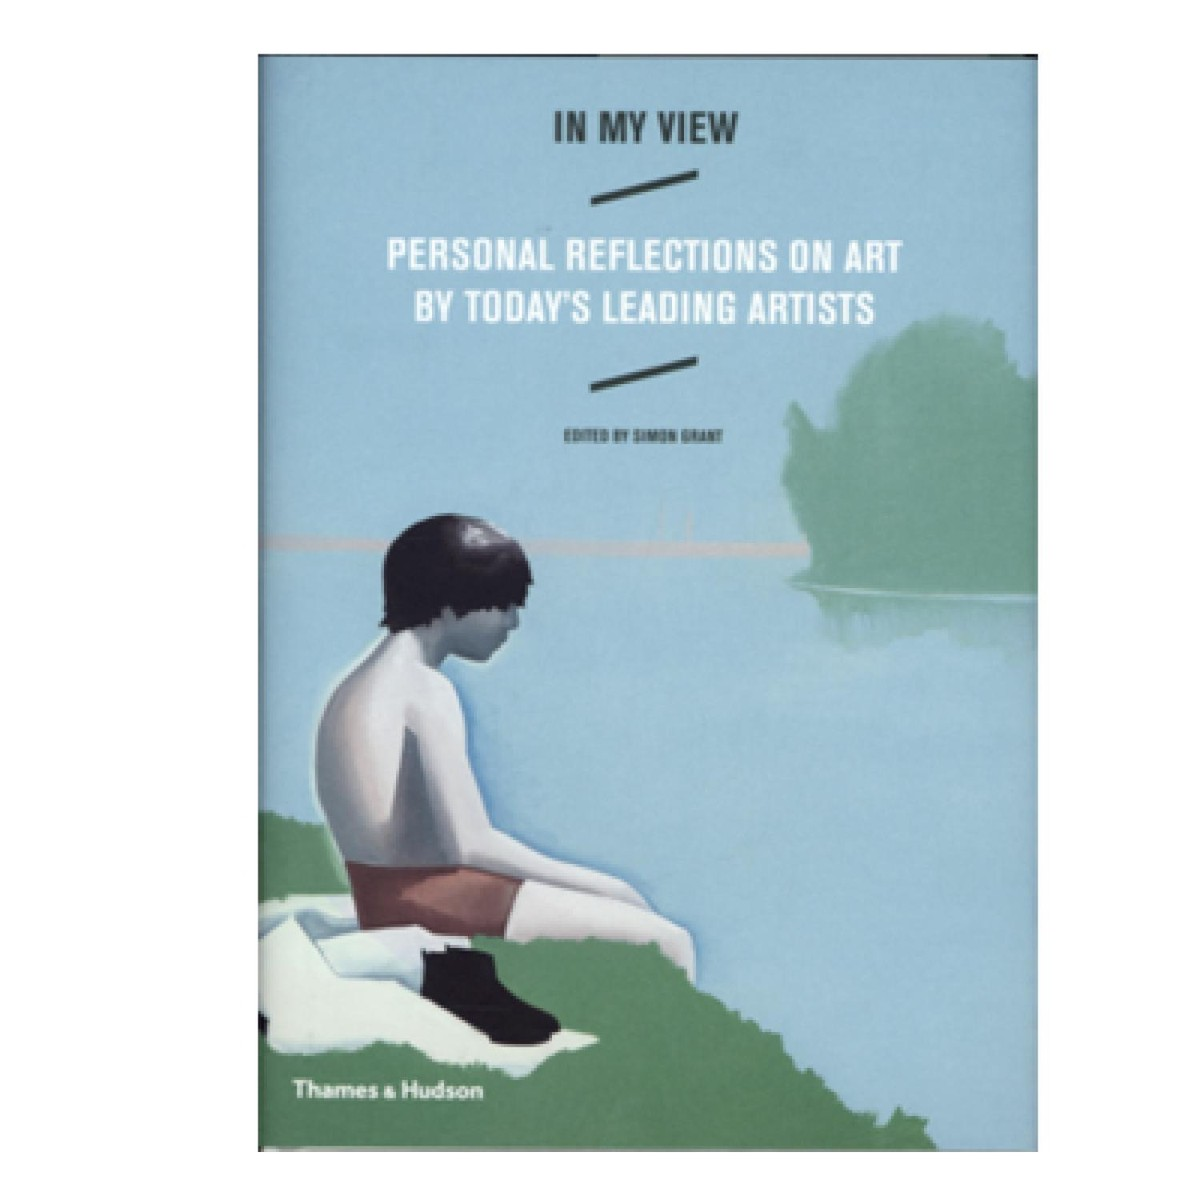 сер./Personal reflections on art by todays leading artists анг. по 1 345.00 руб от изд. Thames&Hudson